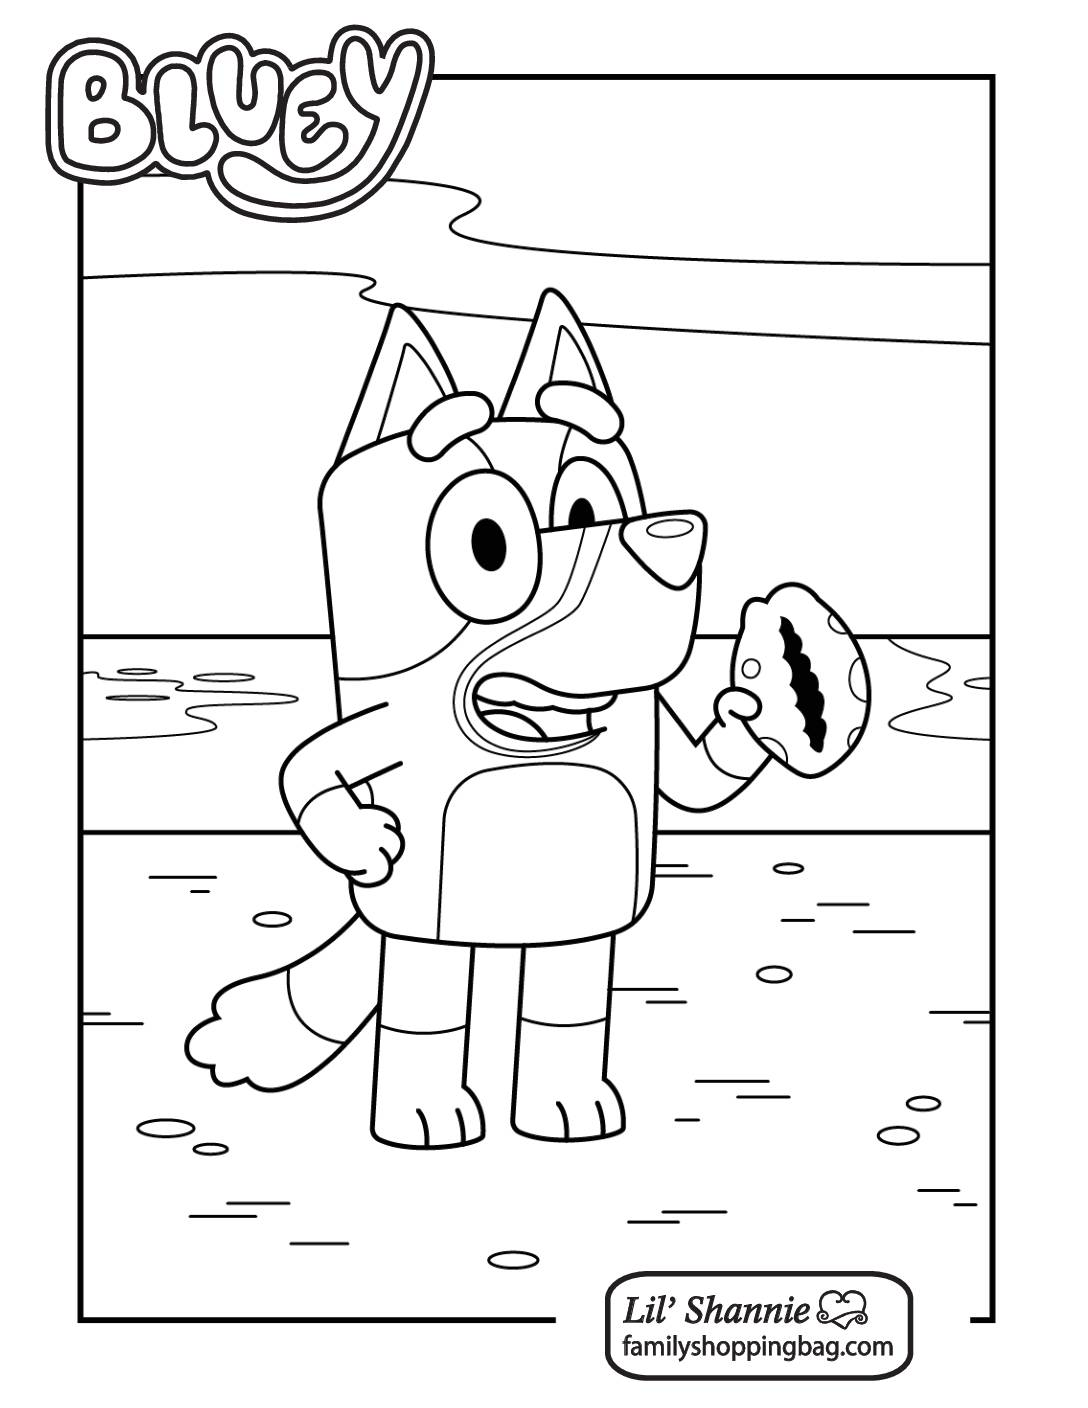 Coloring Page 5 Bluey